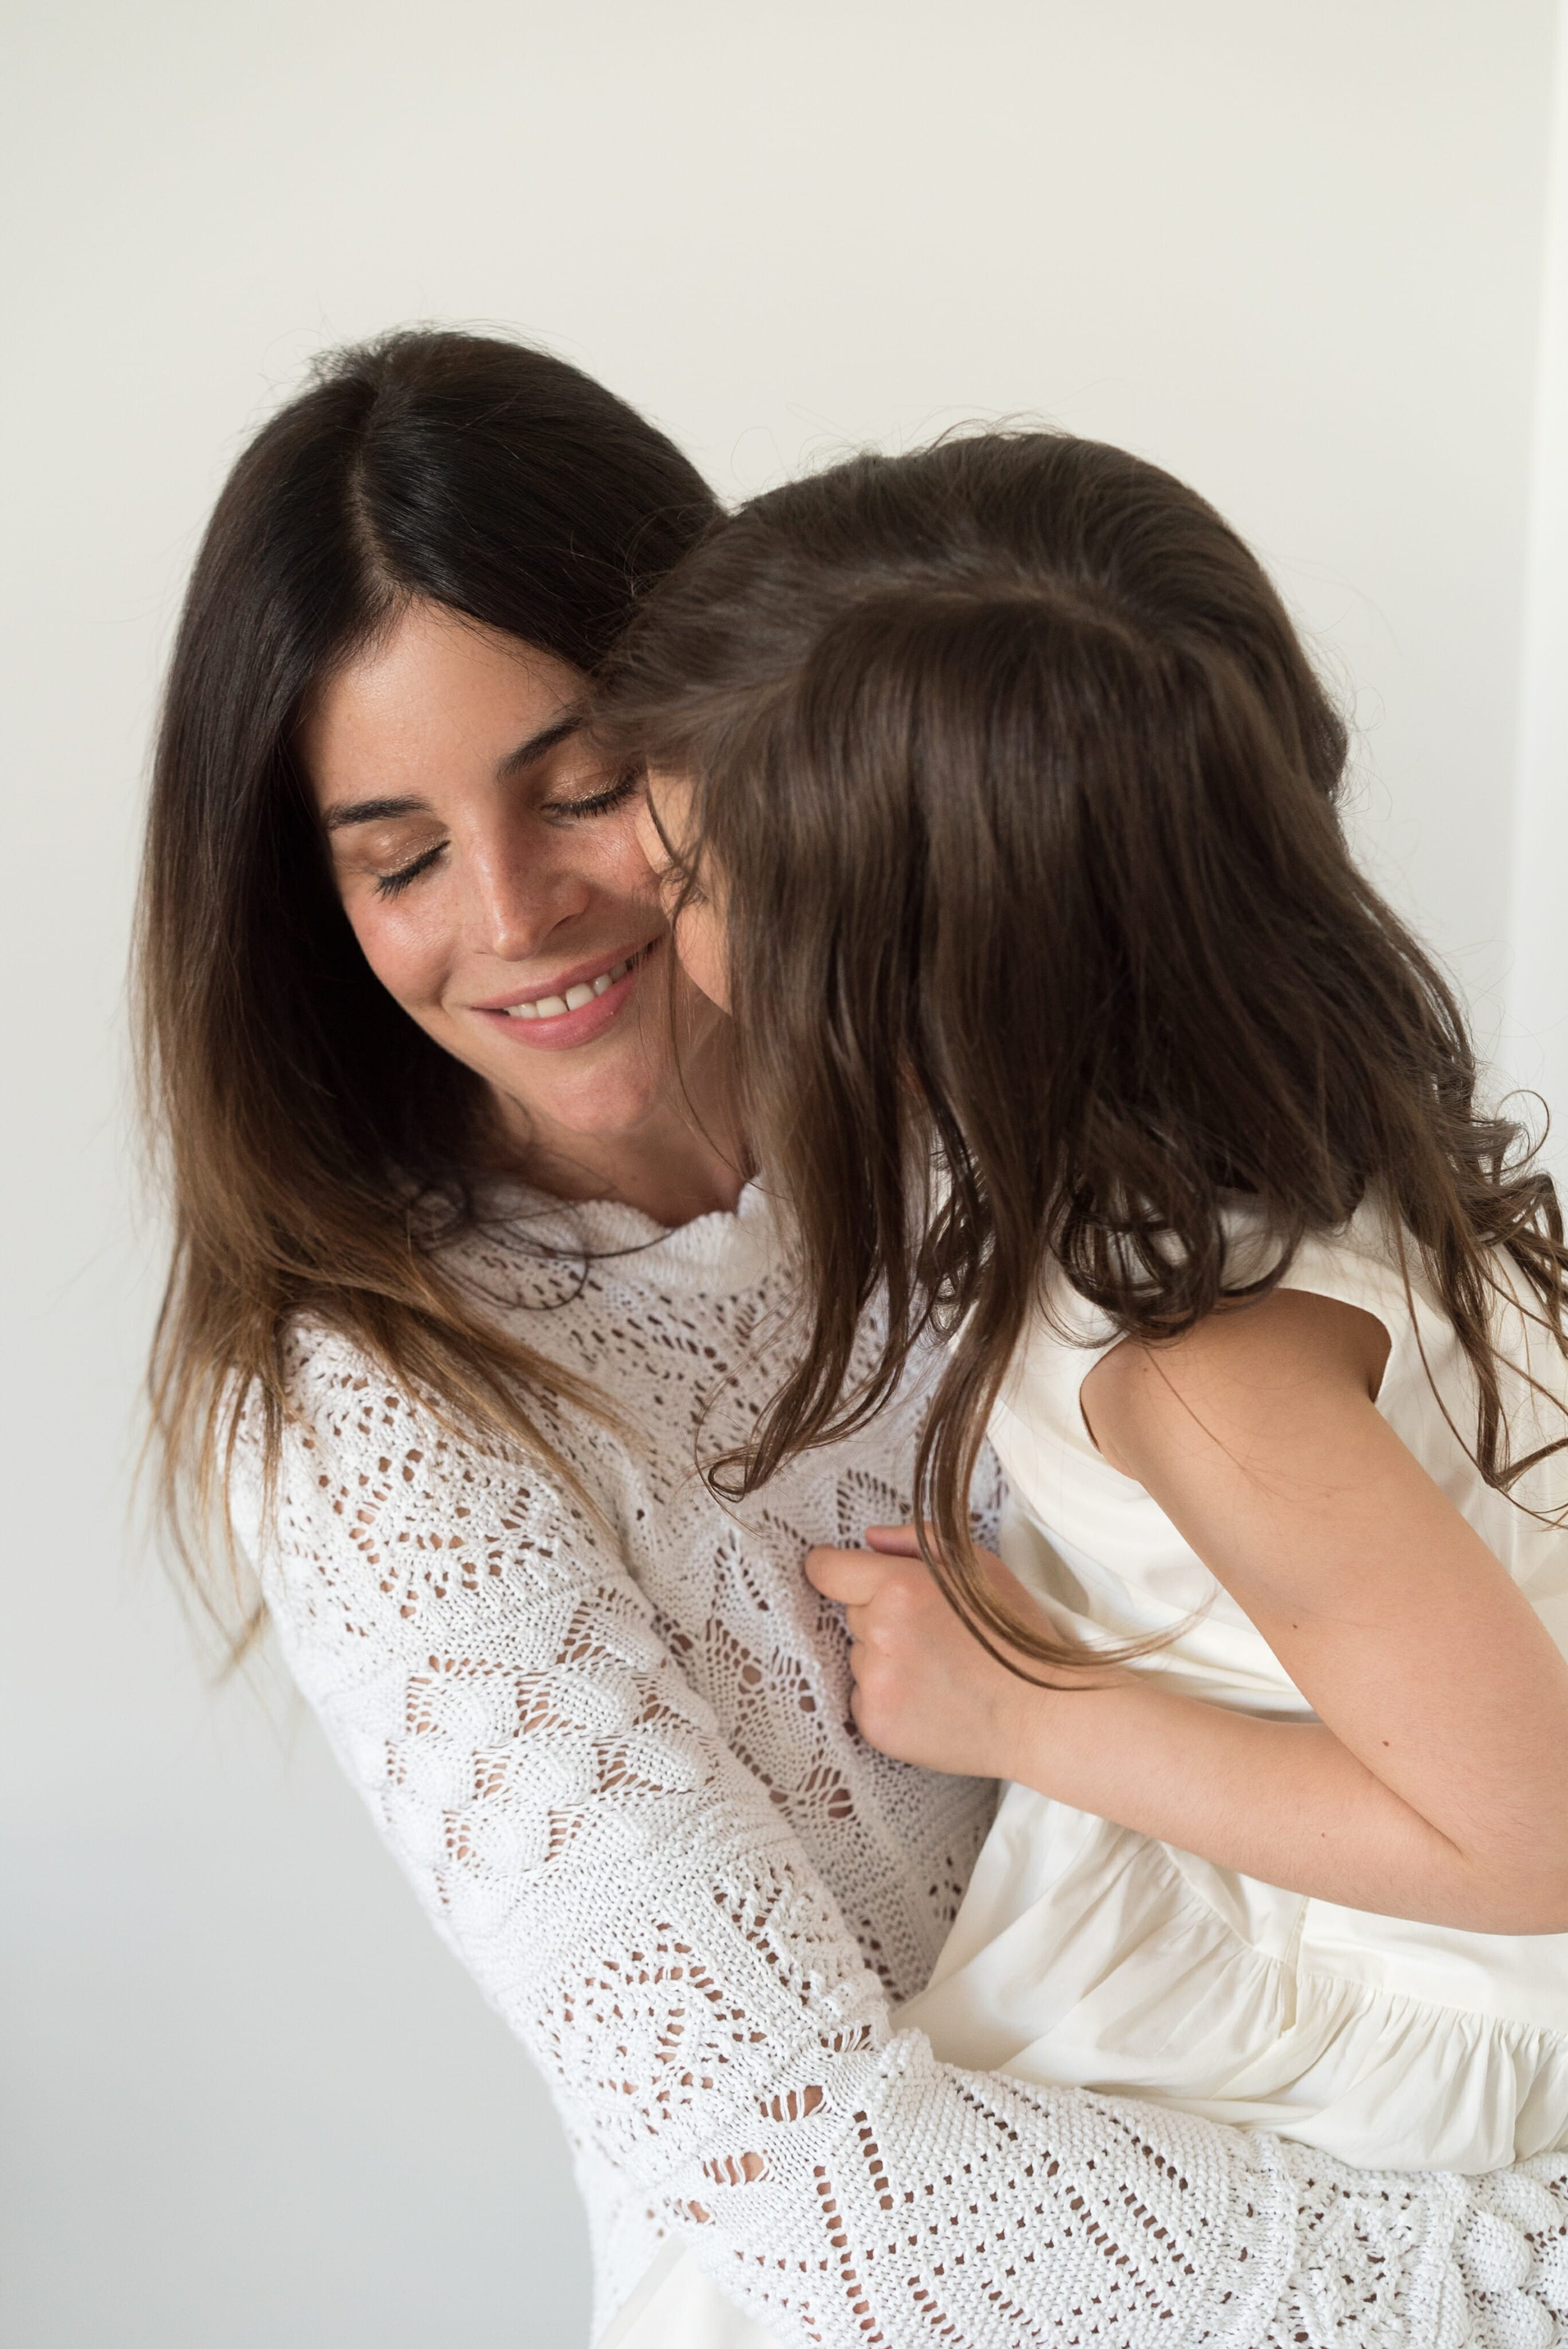 Motherhood and Unconditional Love with Julia Restoin Roitfeld